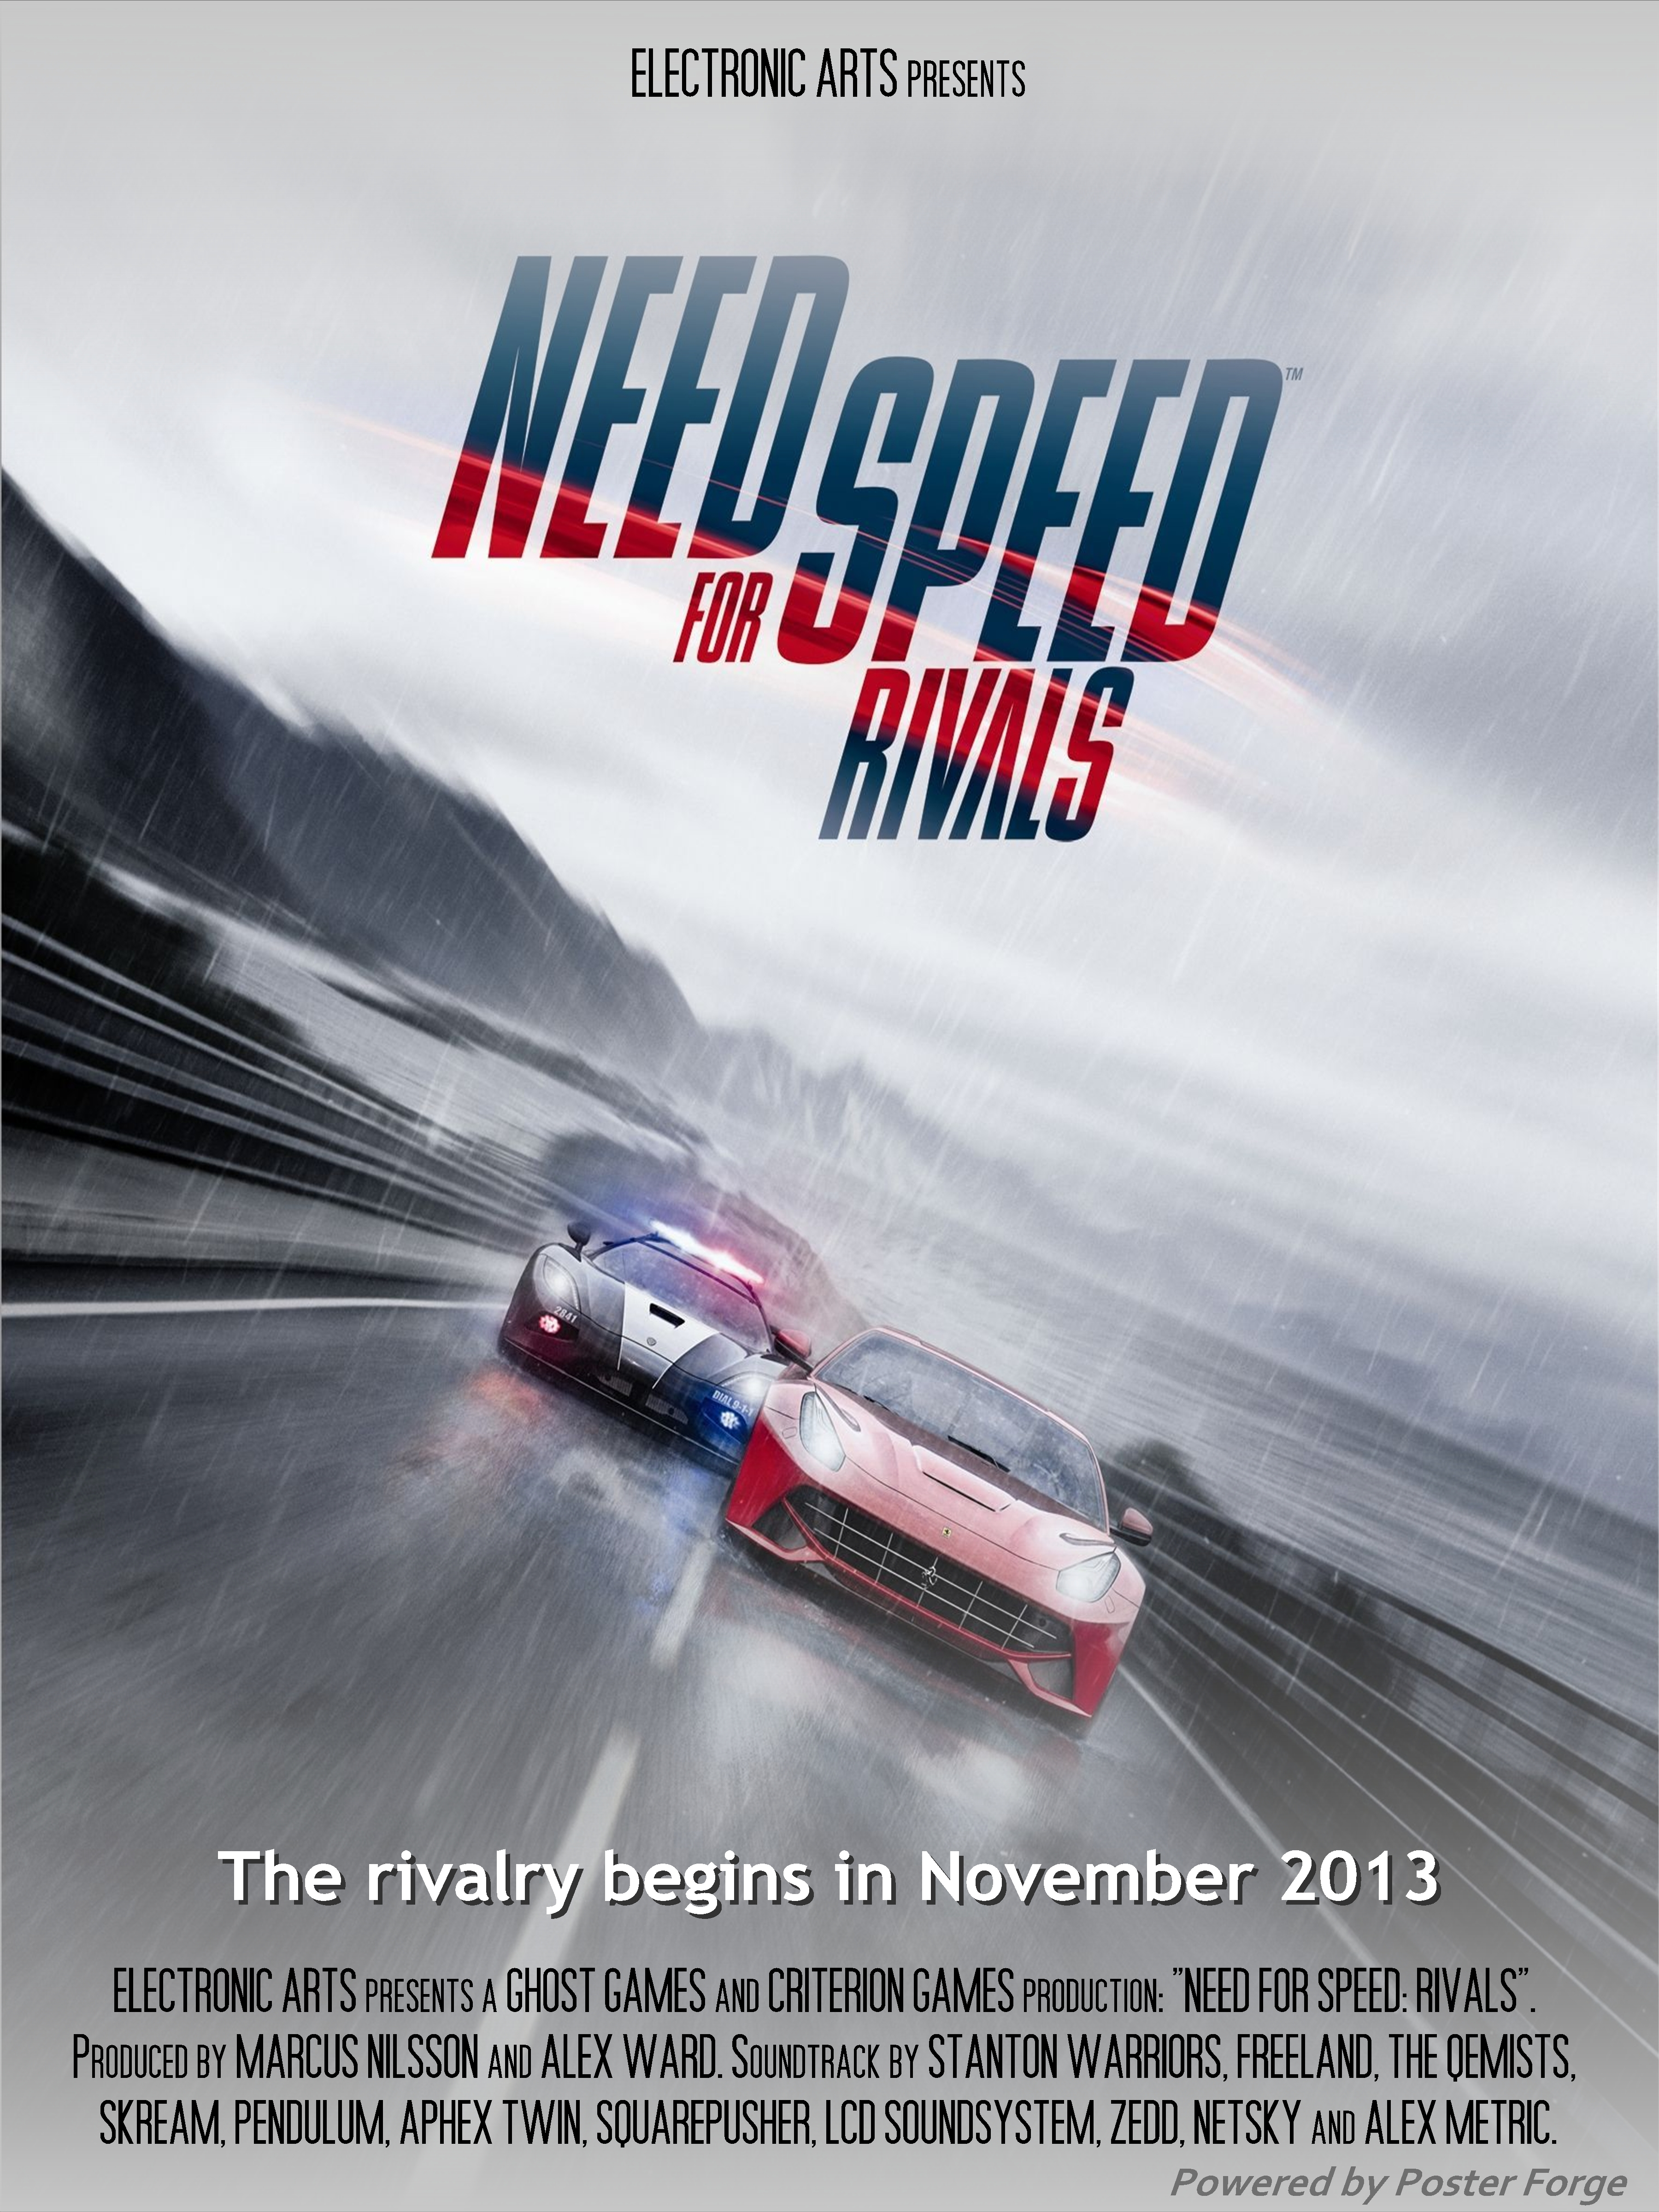 Need for speed rivals movie poster birthday gift by nick98 on